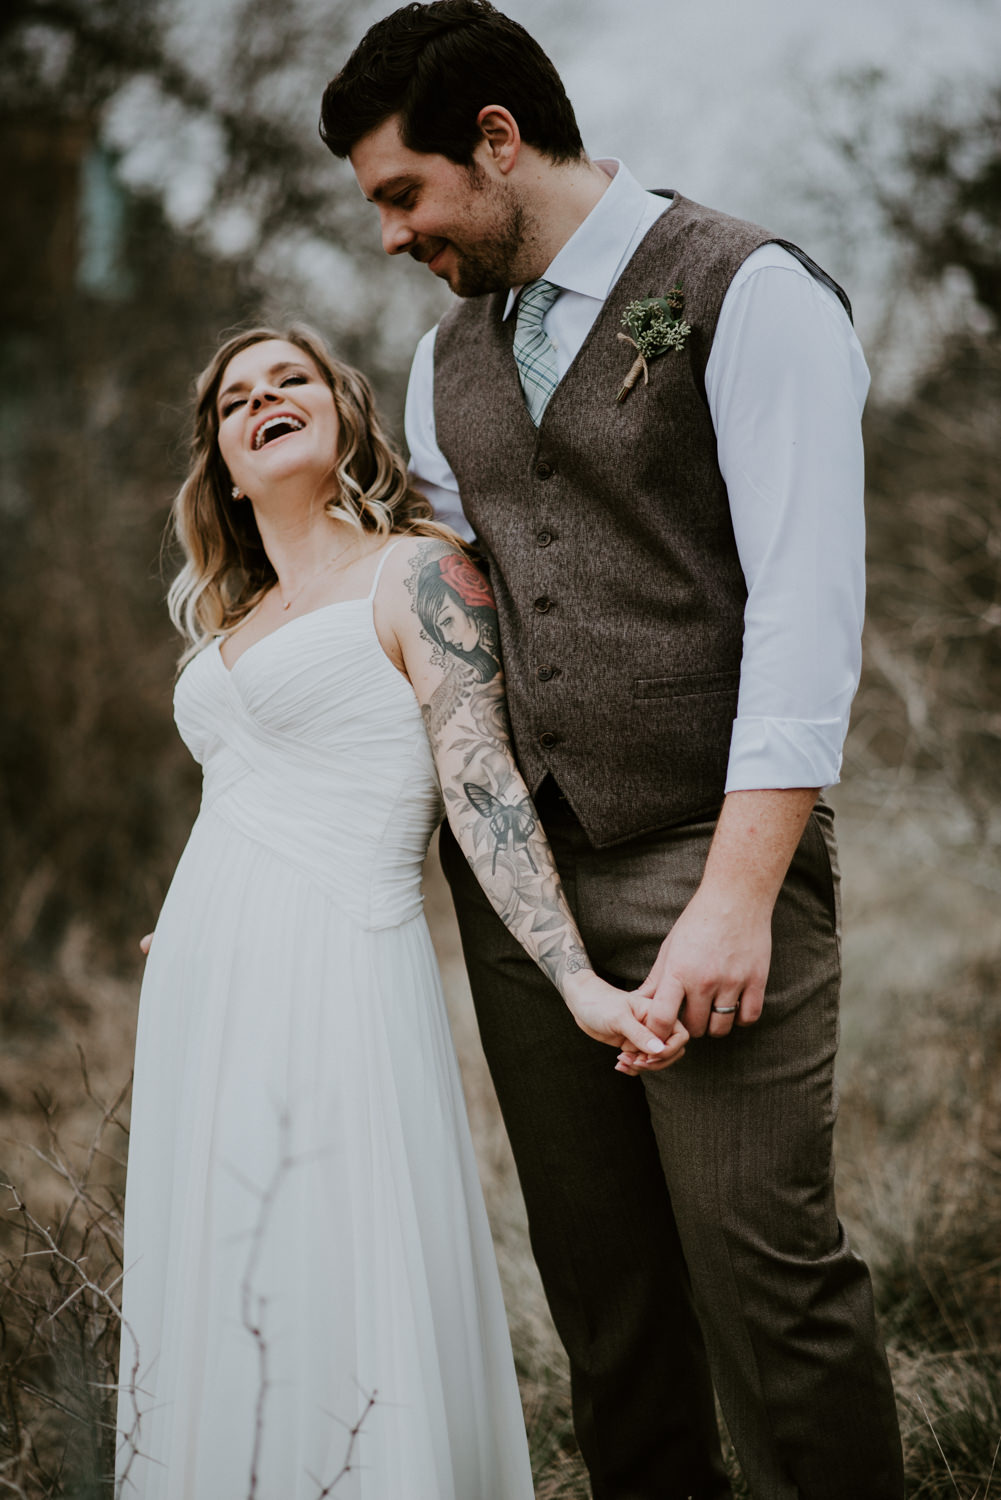 bride and groom laugh during portraits at austin wedding